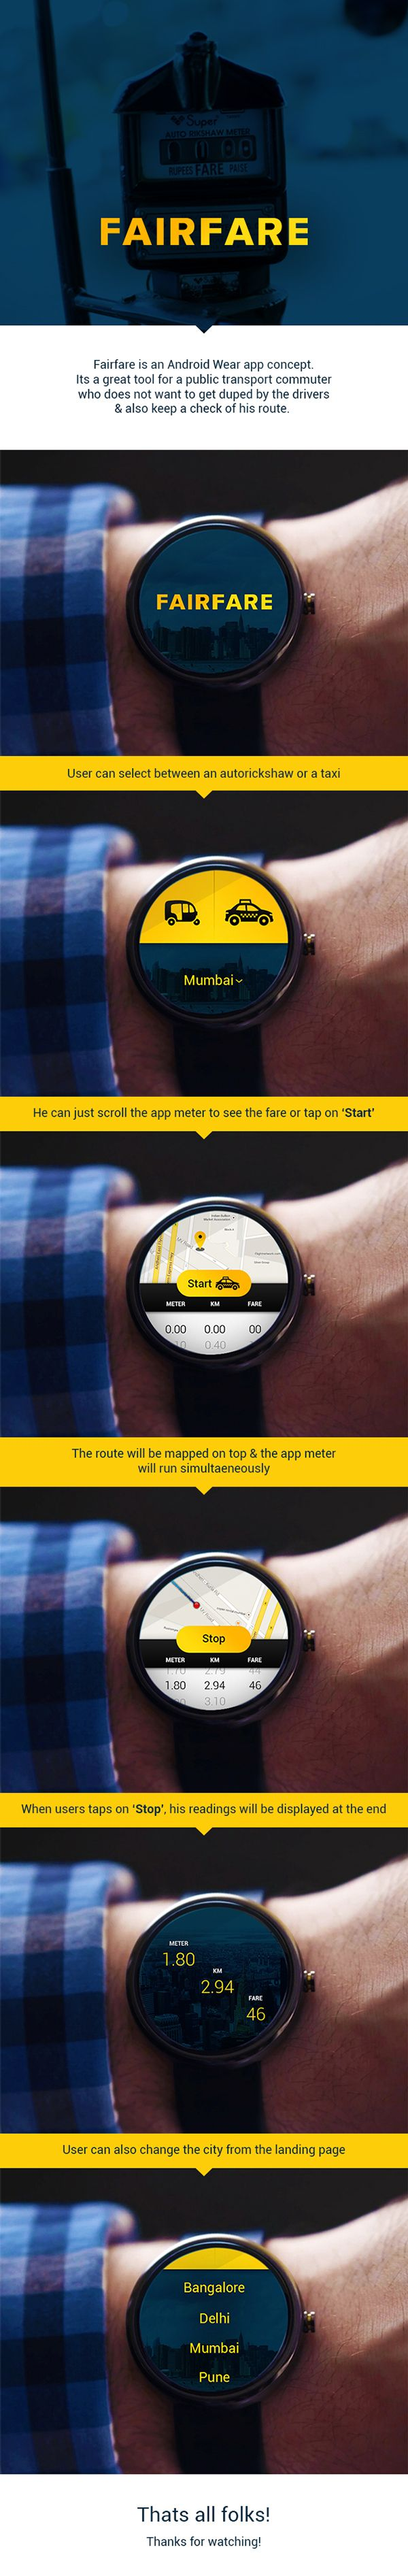 Fairfare Android Wear App on Behance